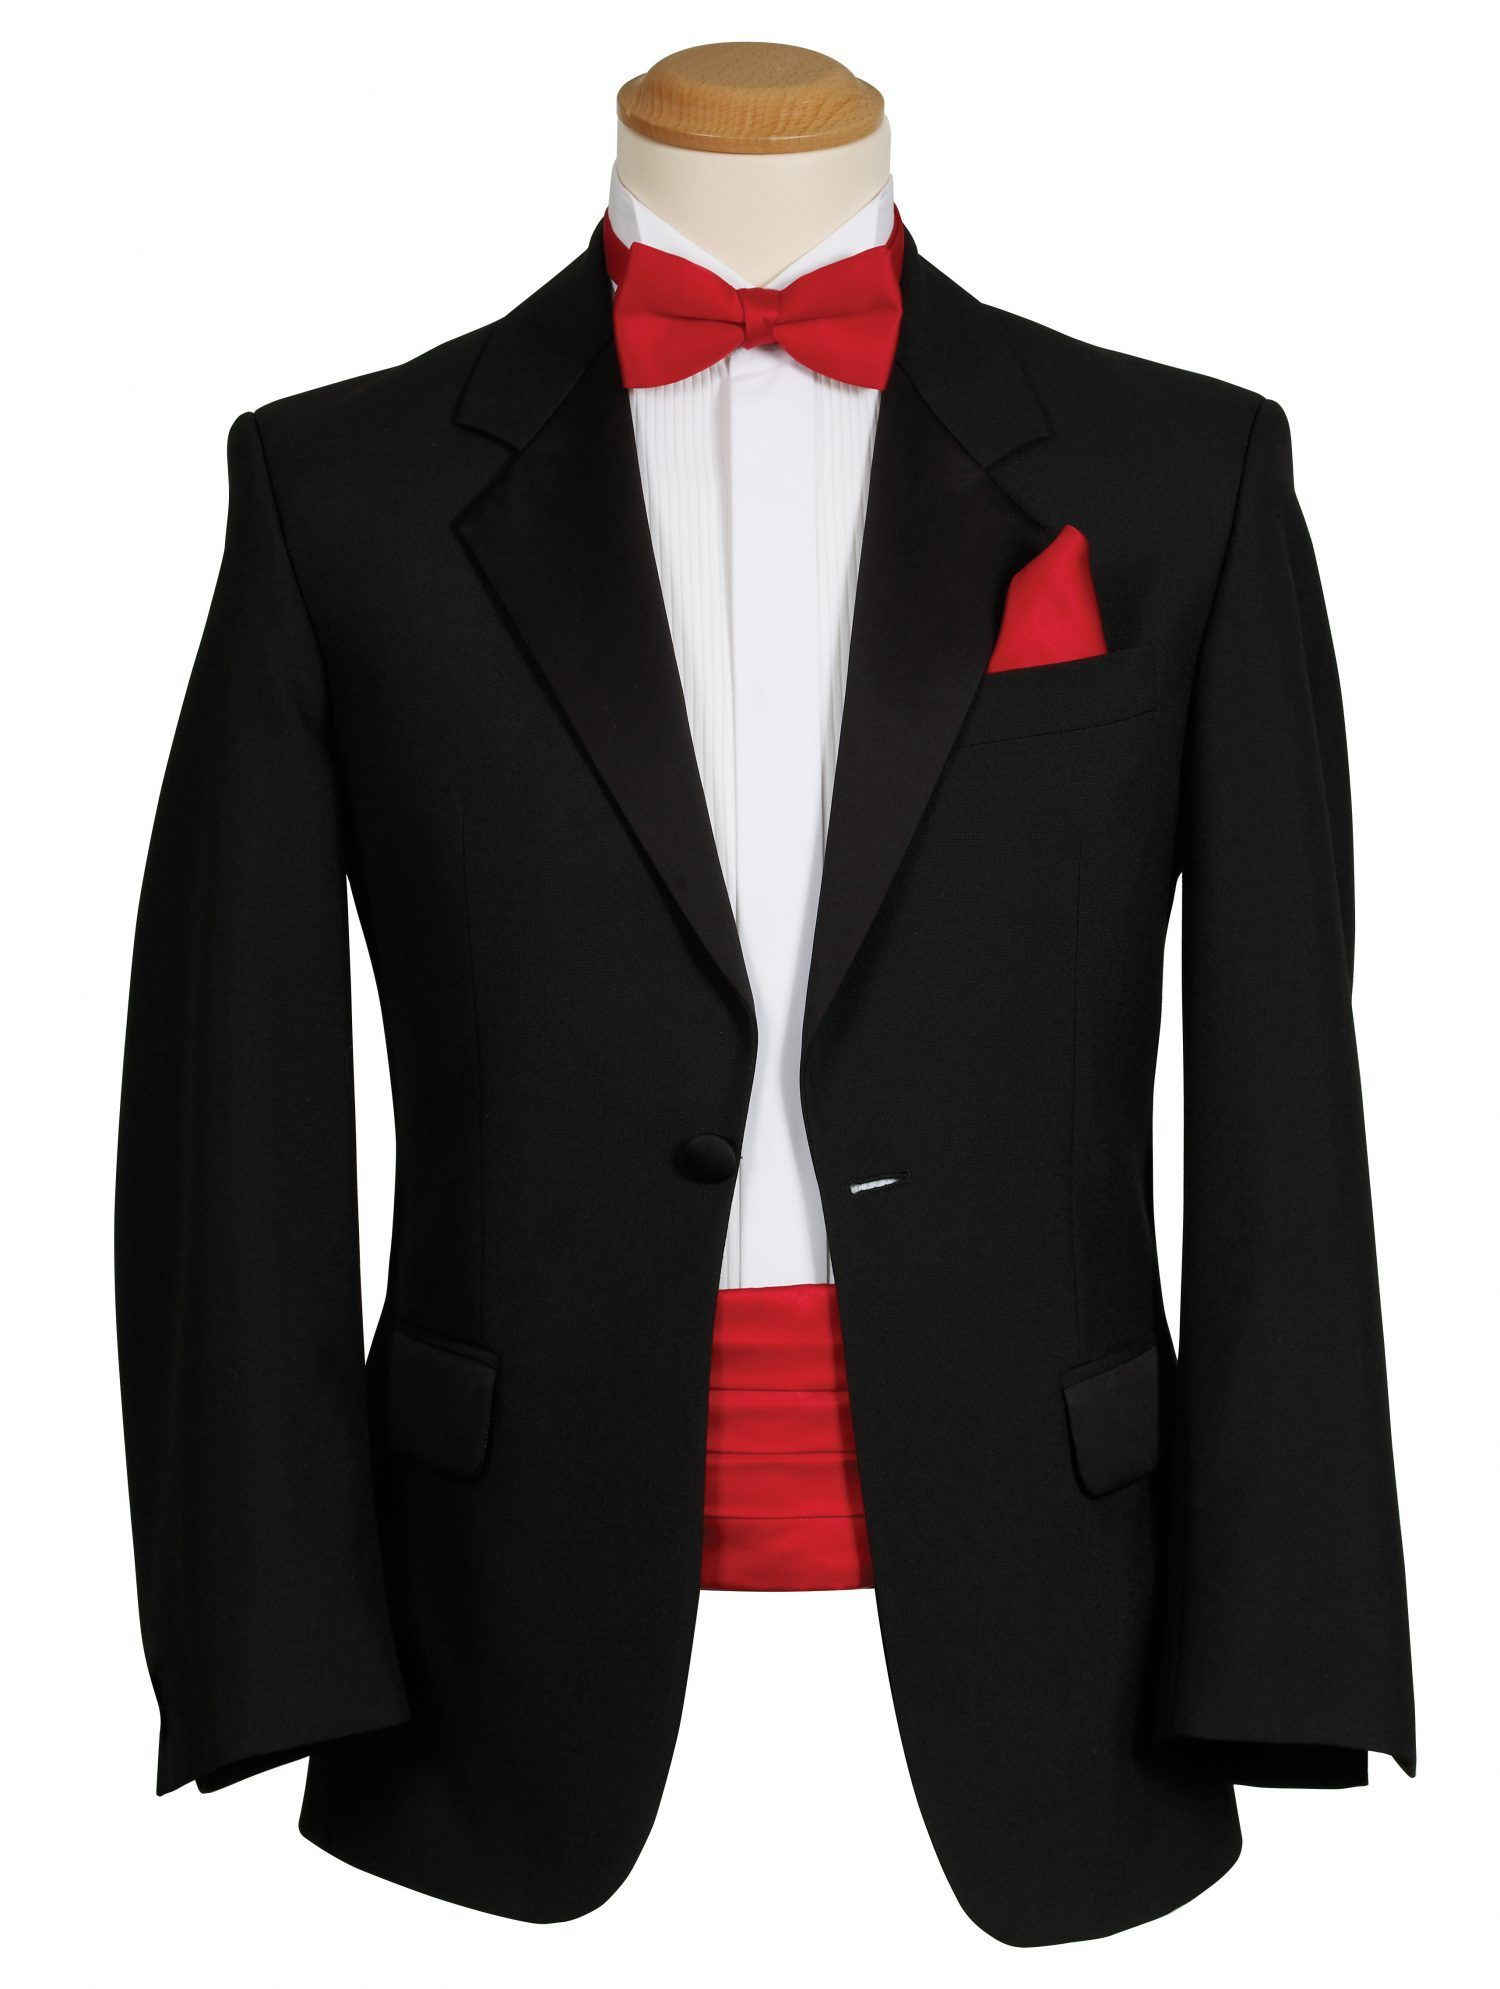 Evening Suit (With images) Prom suits for men, Wedding